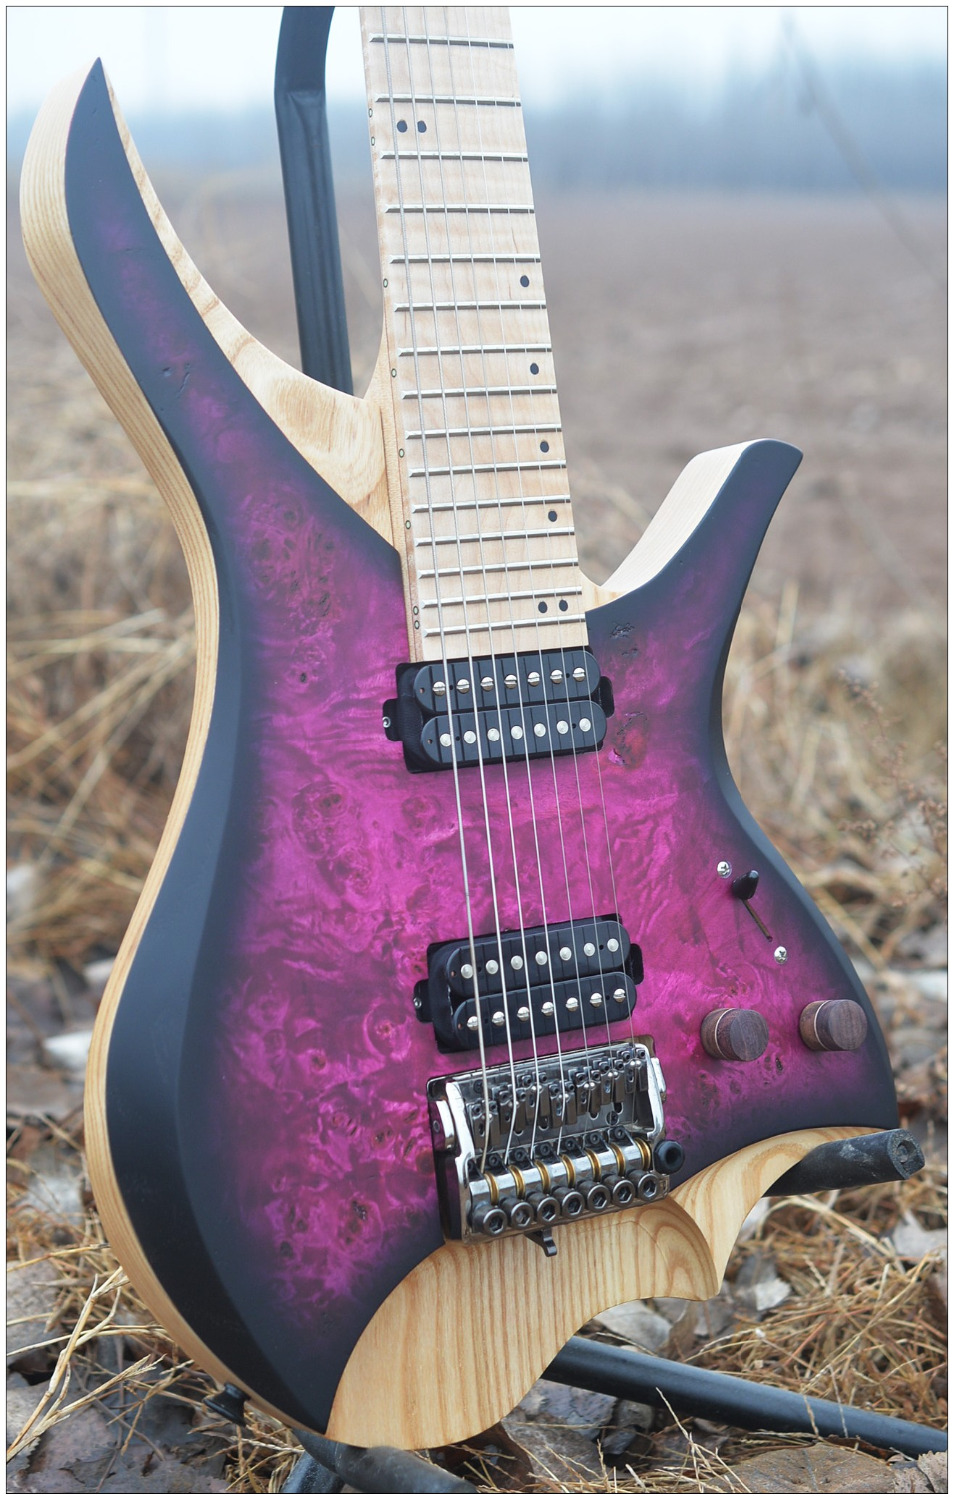 NK Headless 7 Strings Headless Electric Guitar Purple burst spalted curly maple top Flame maple Neck in stock free shipping